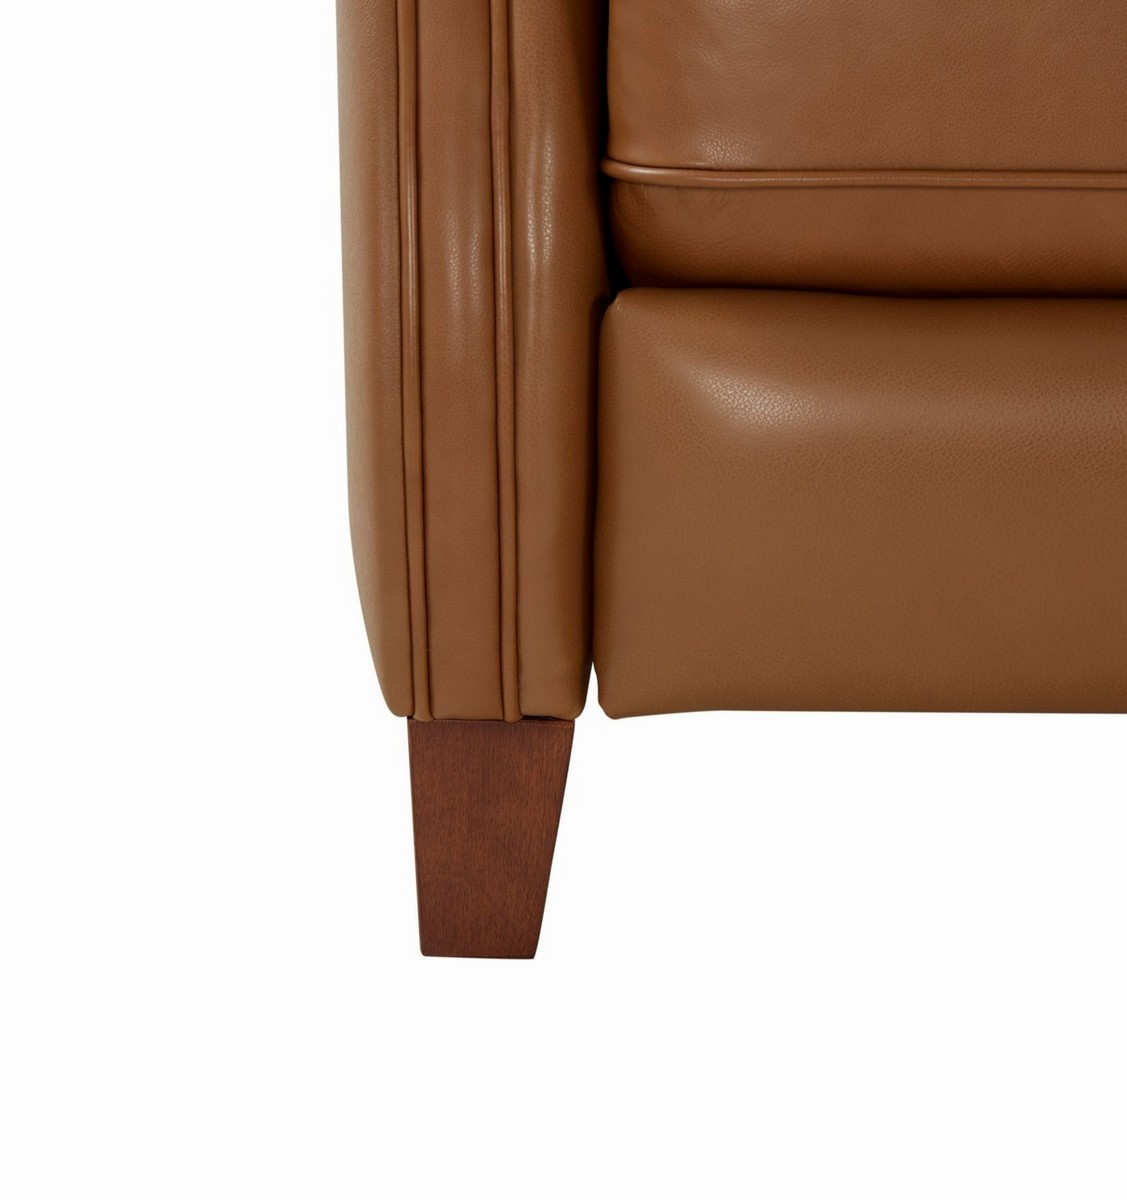 Barcalounger Penrose Recliner Chair - Shoreham Ponytail/All Leather